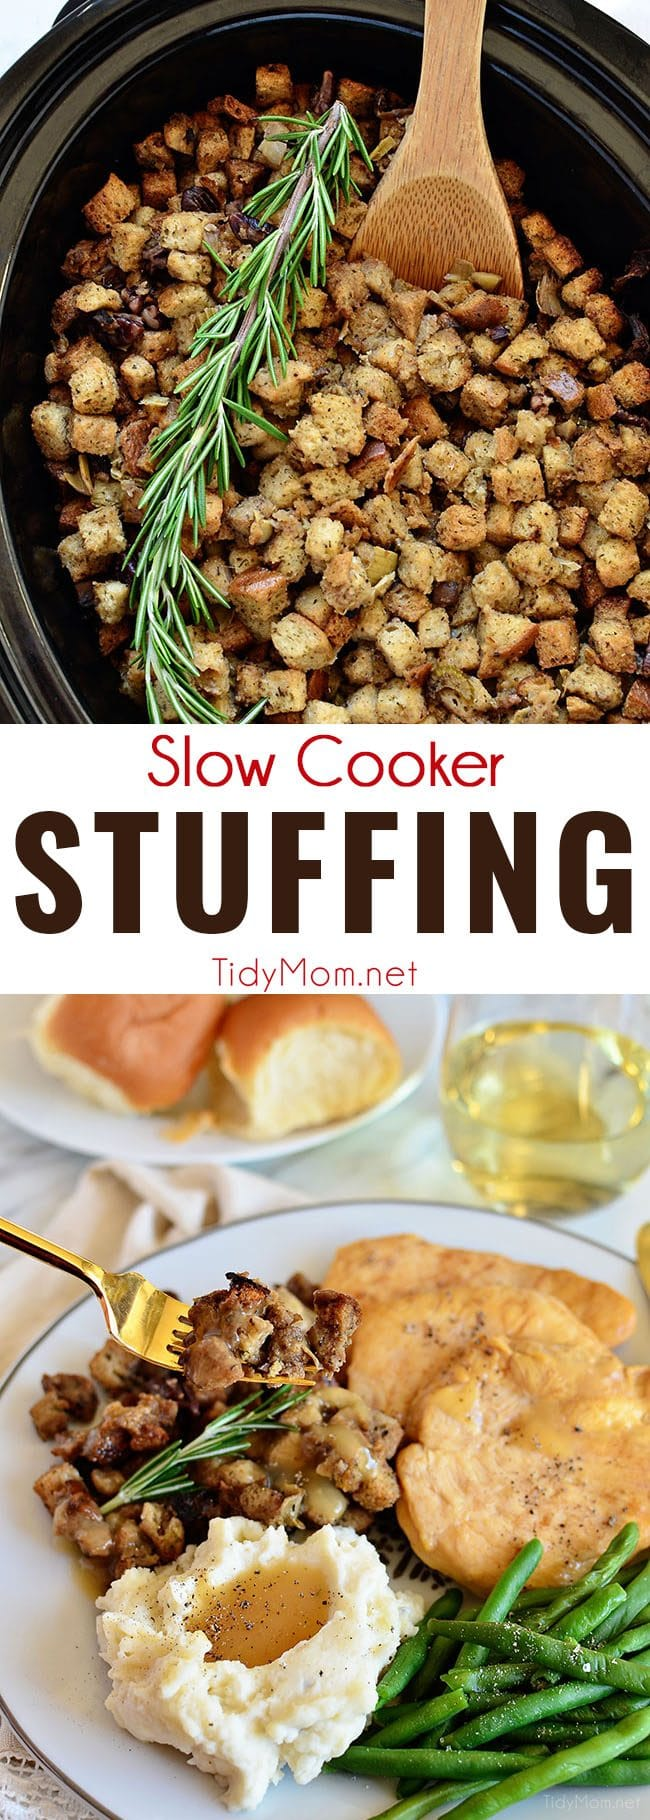 Slow Cooker Stuffing with artichokes, mushrooms and toasted pecans. Easy, flavorful and perfect for any holiday meal. Get the recipe at TidyMom.net